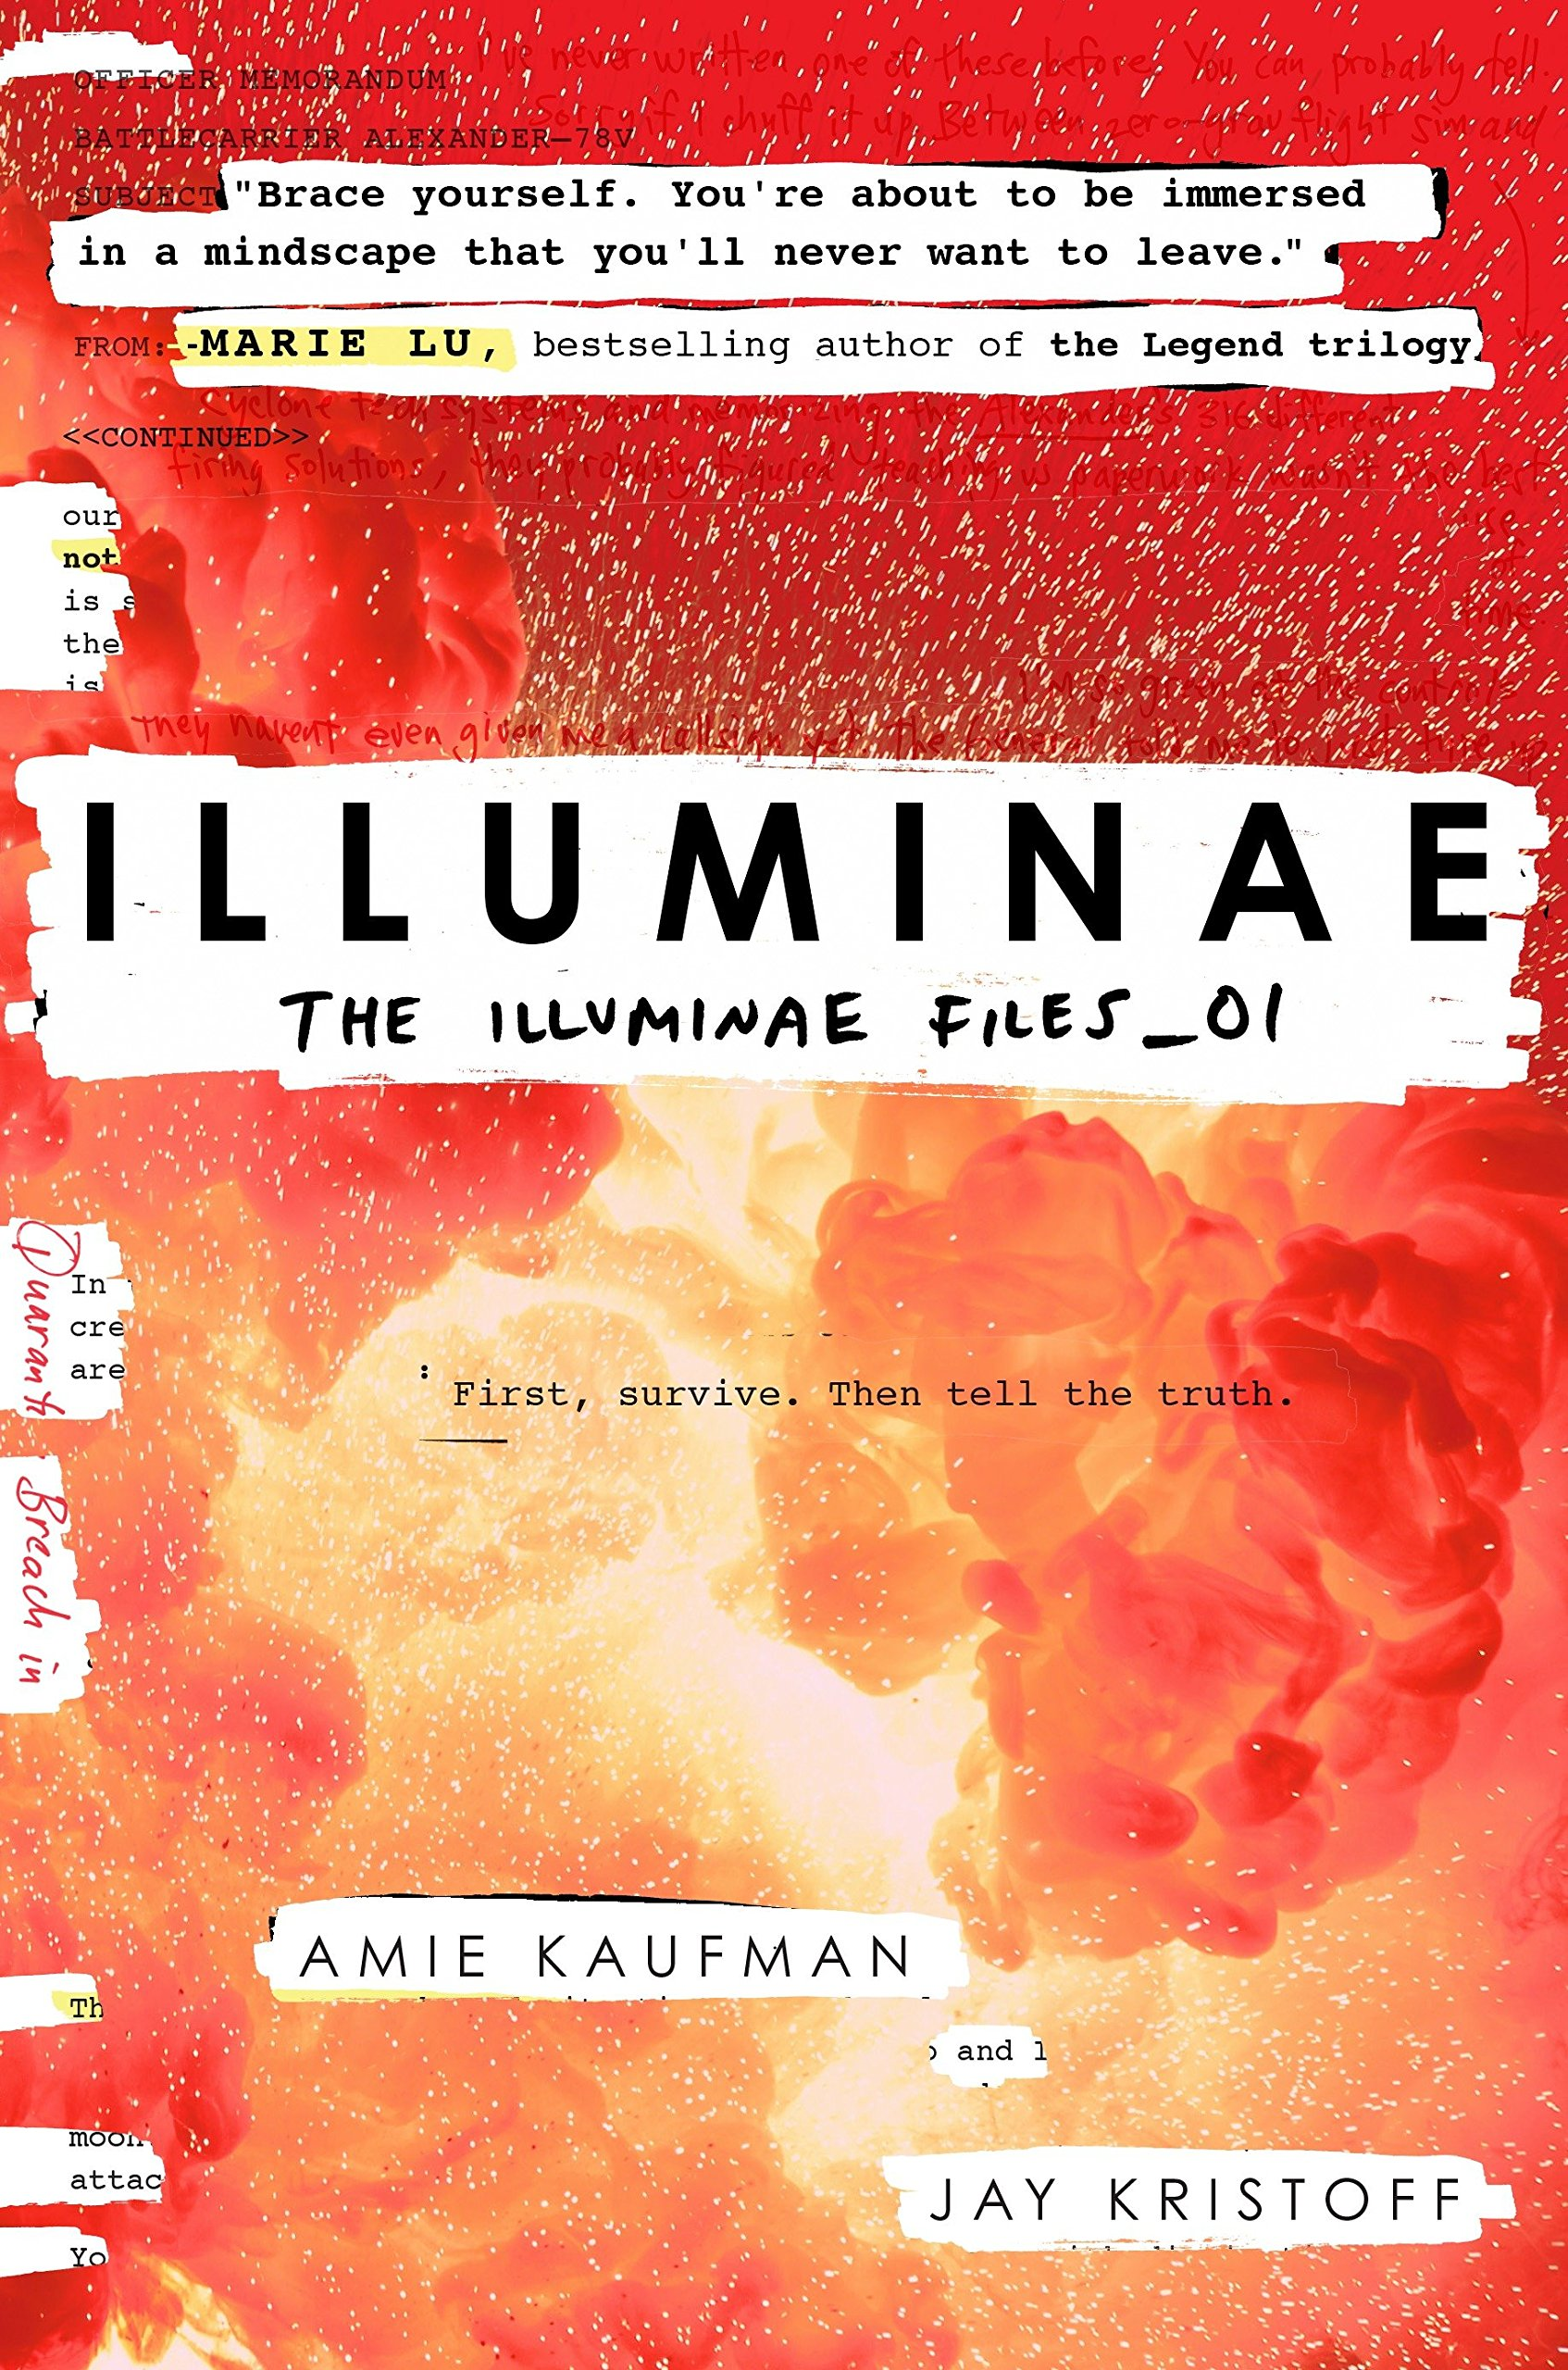 Amazon.com: Illuminae (The Illuminae Files) (9780553499117): Amie ...